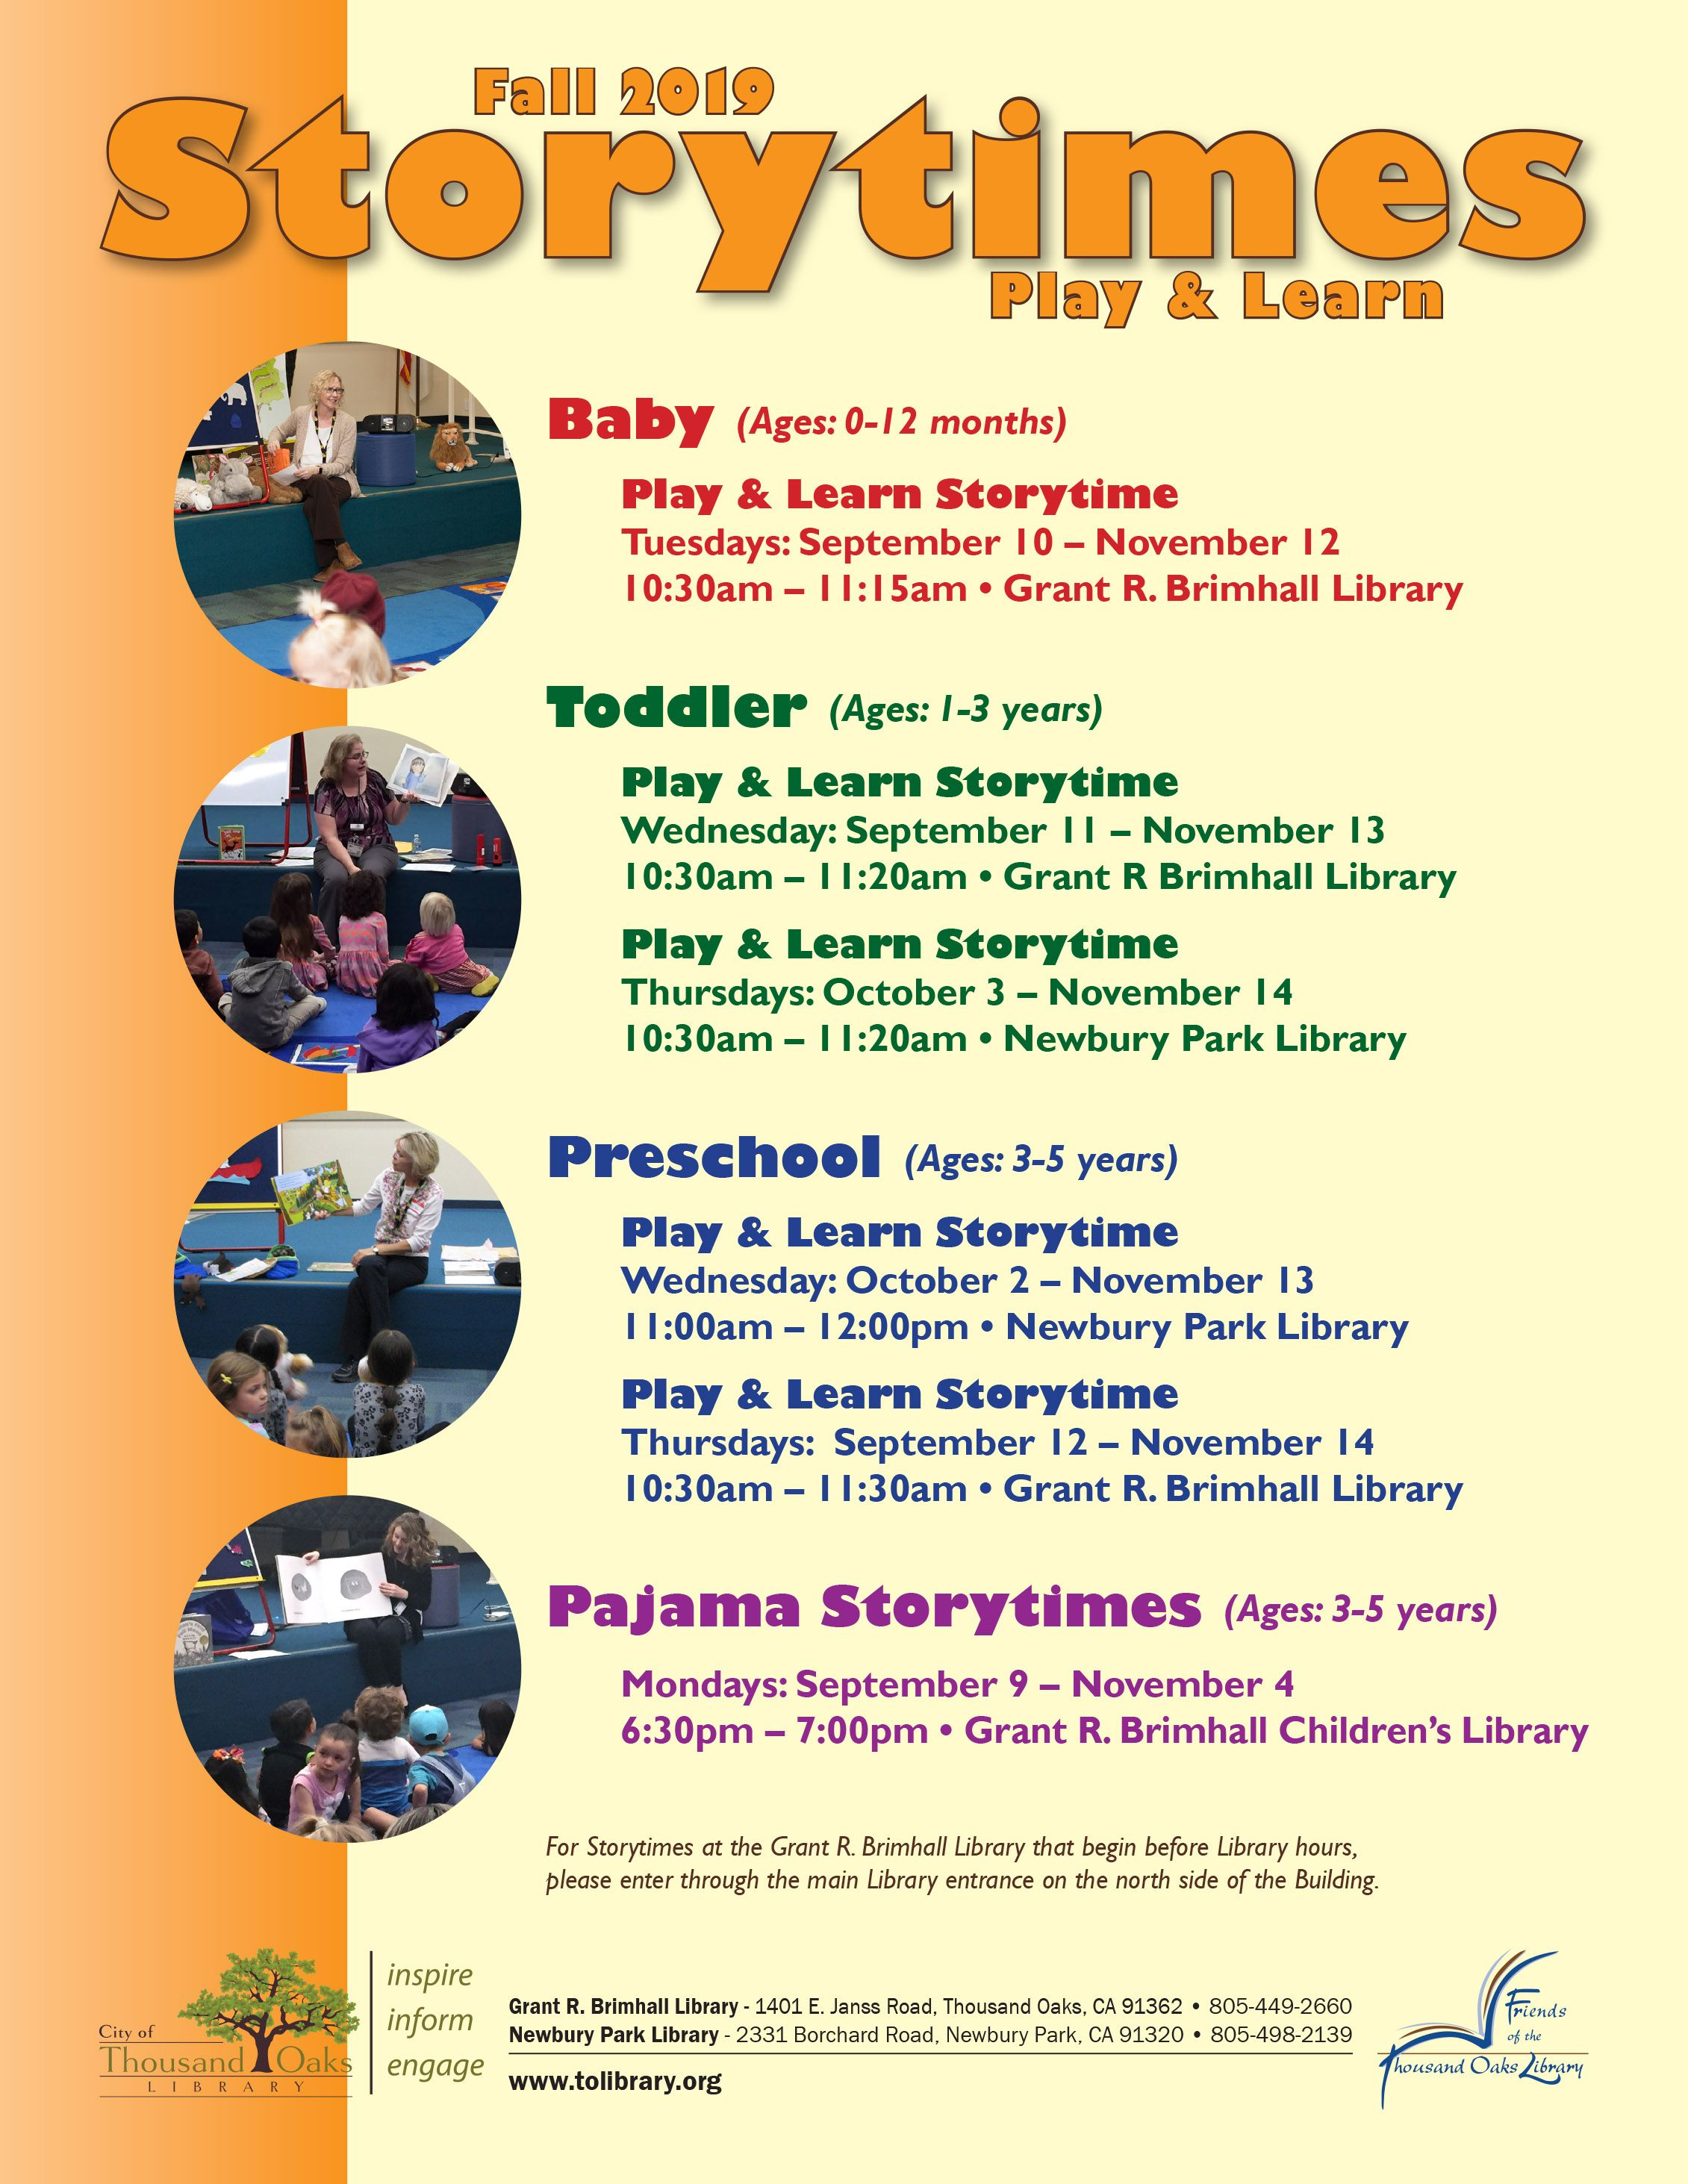 Fall 2019 Storytimes At The Grant R Brimhall Library And The